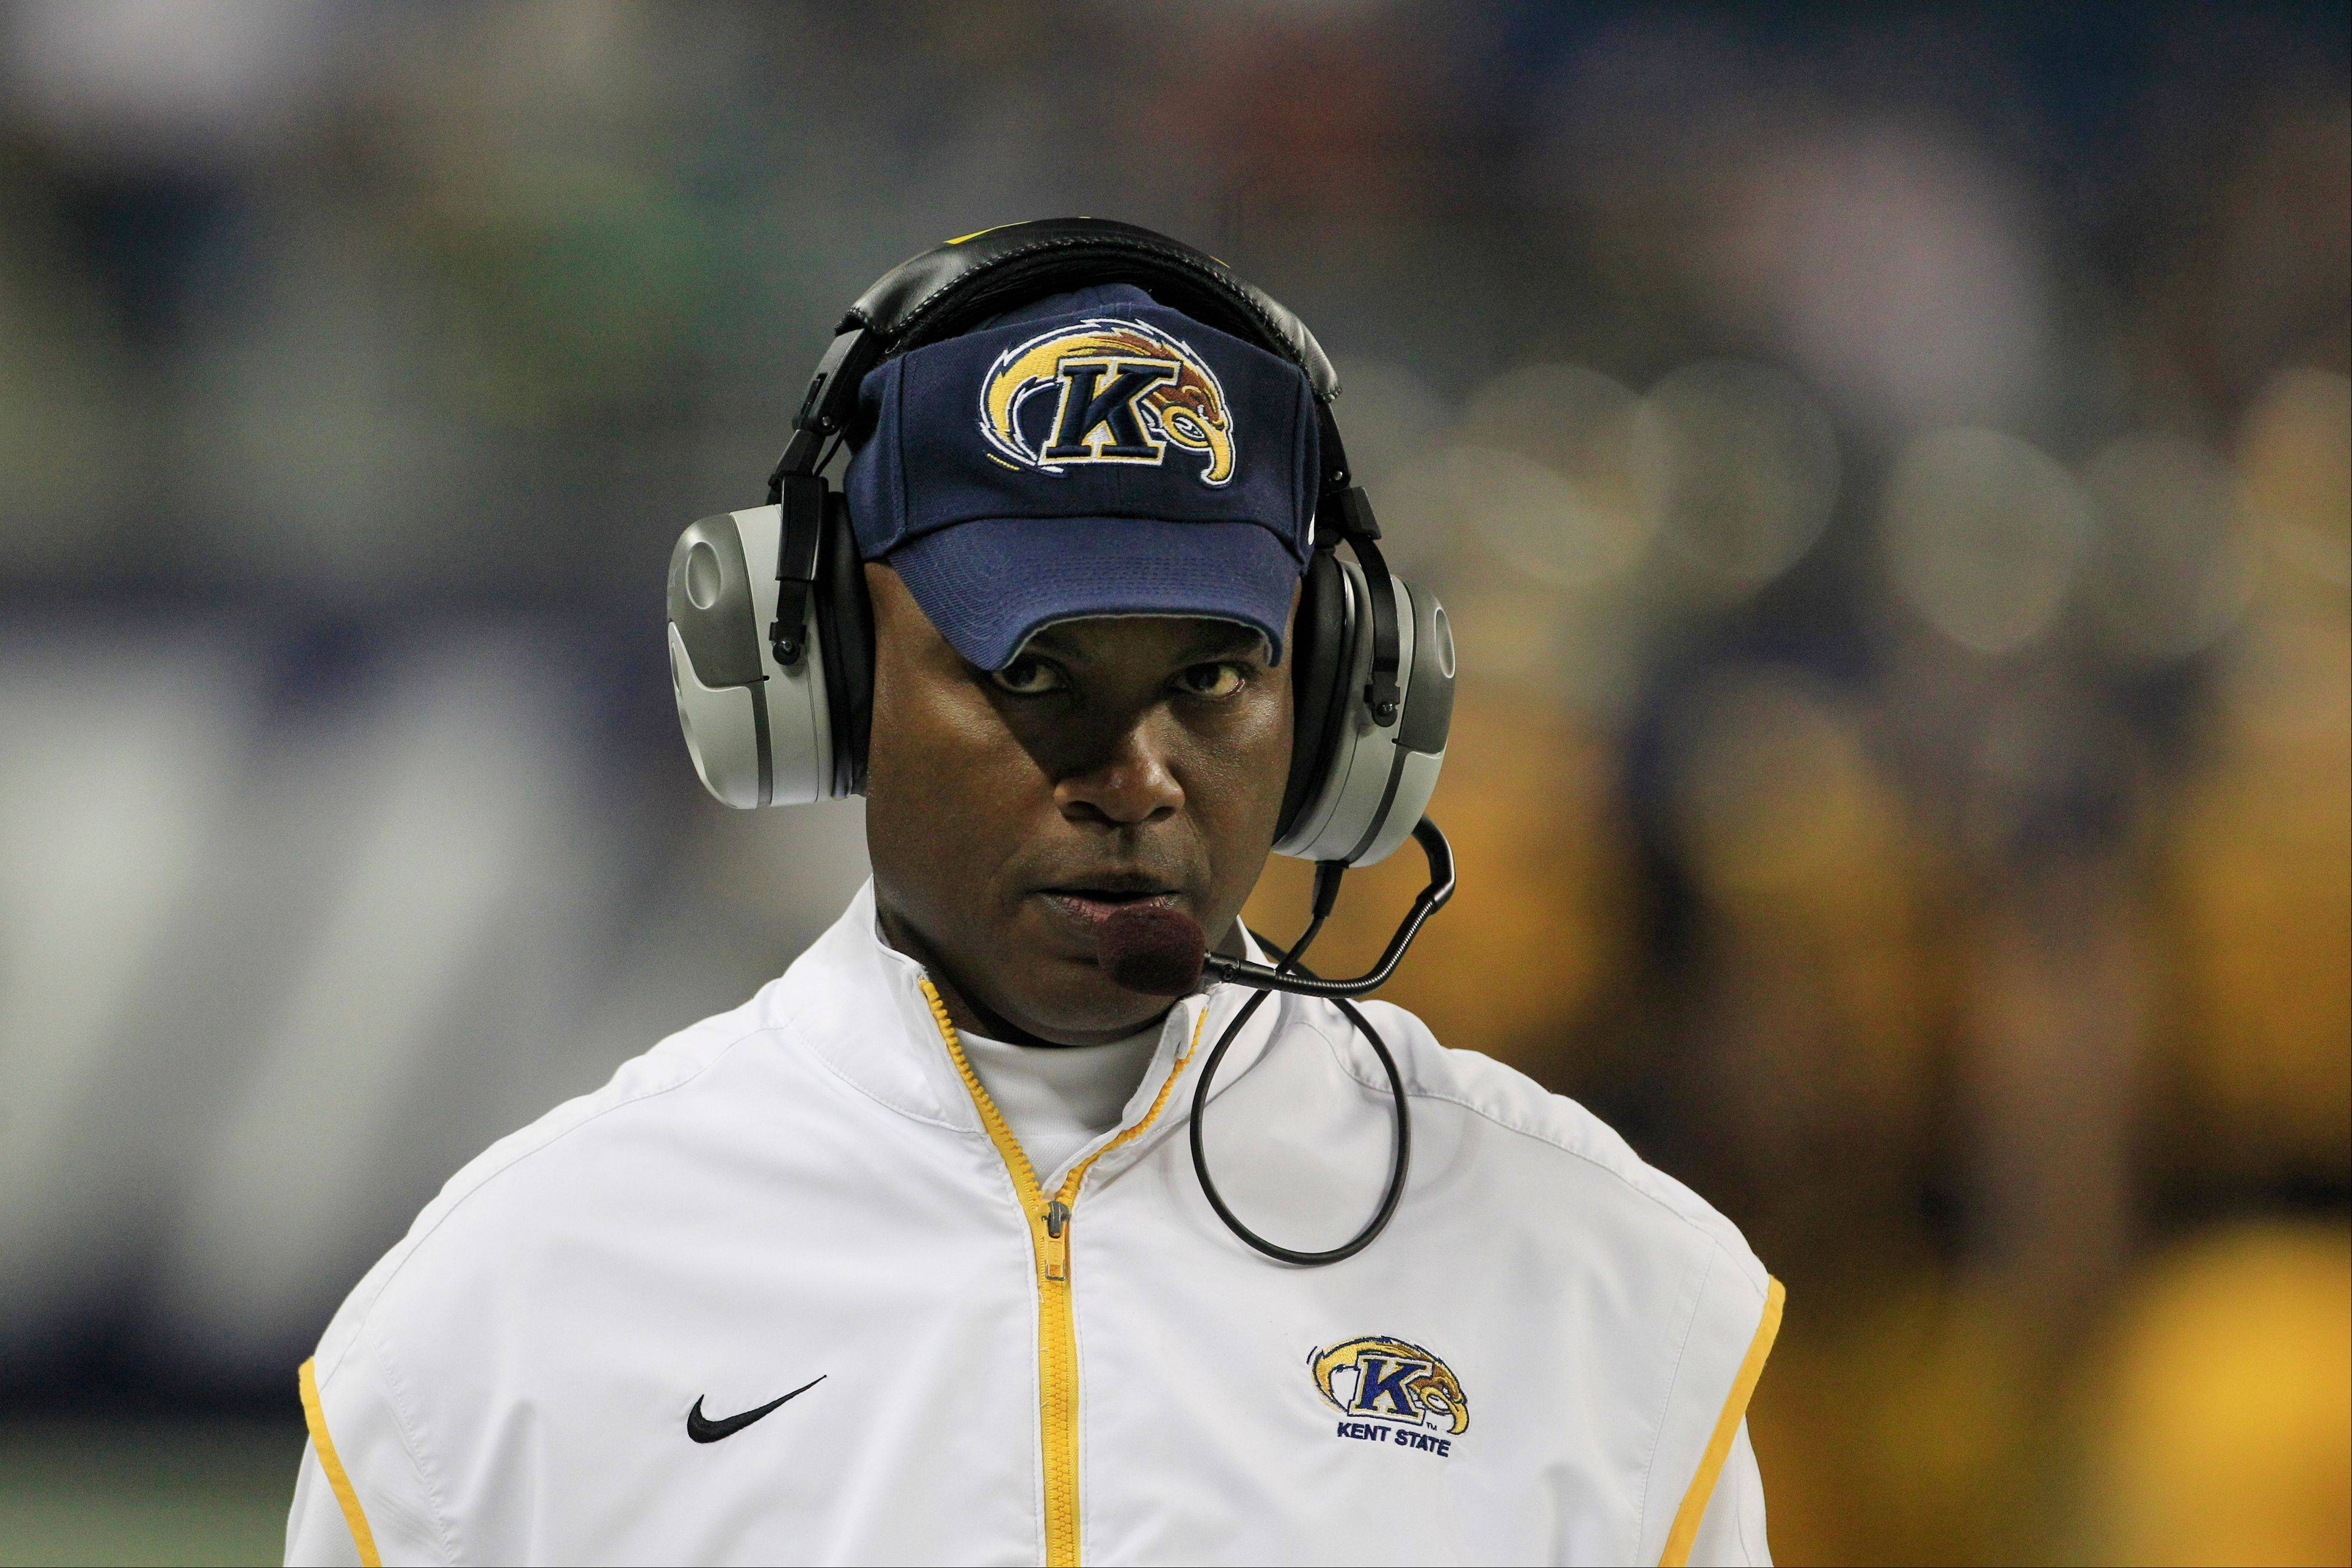 Kent State head coach Darrell Hazell walks the sidelines Friday during the first quarter.